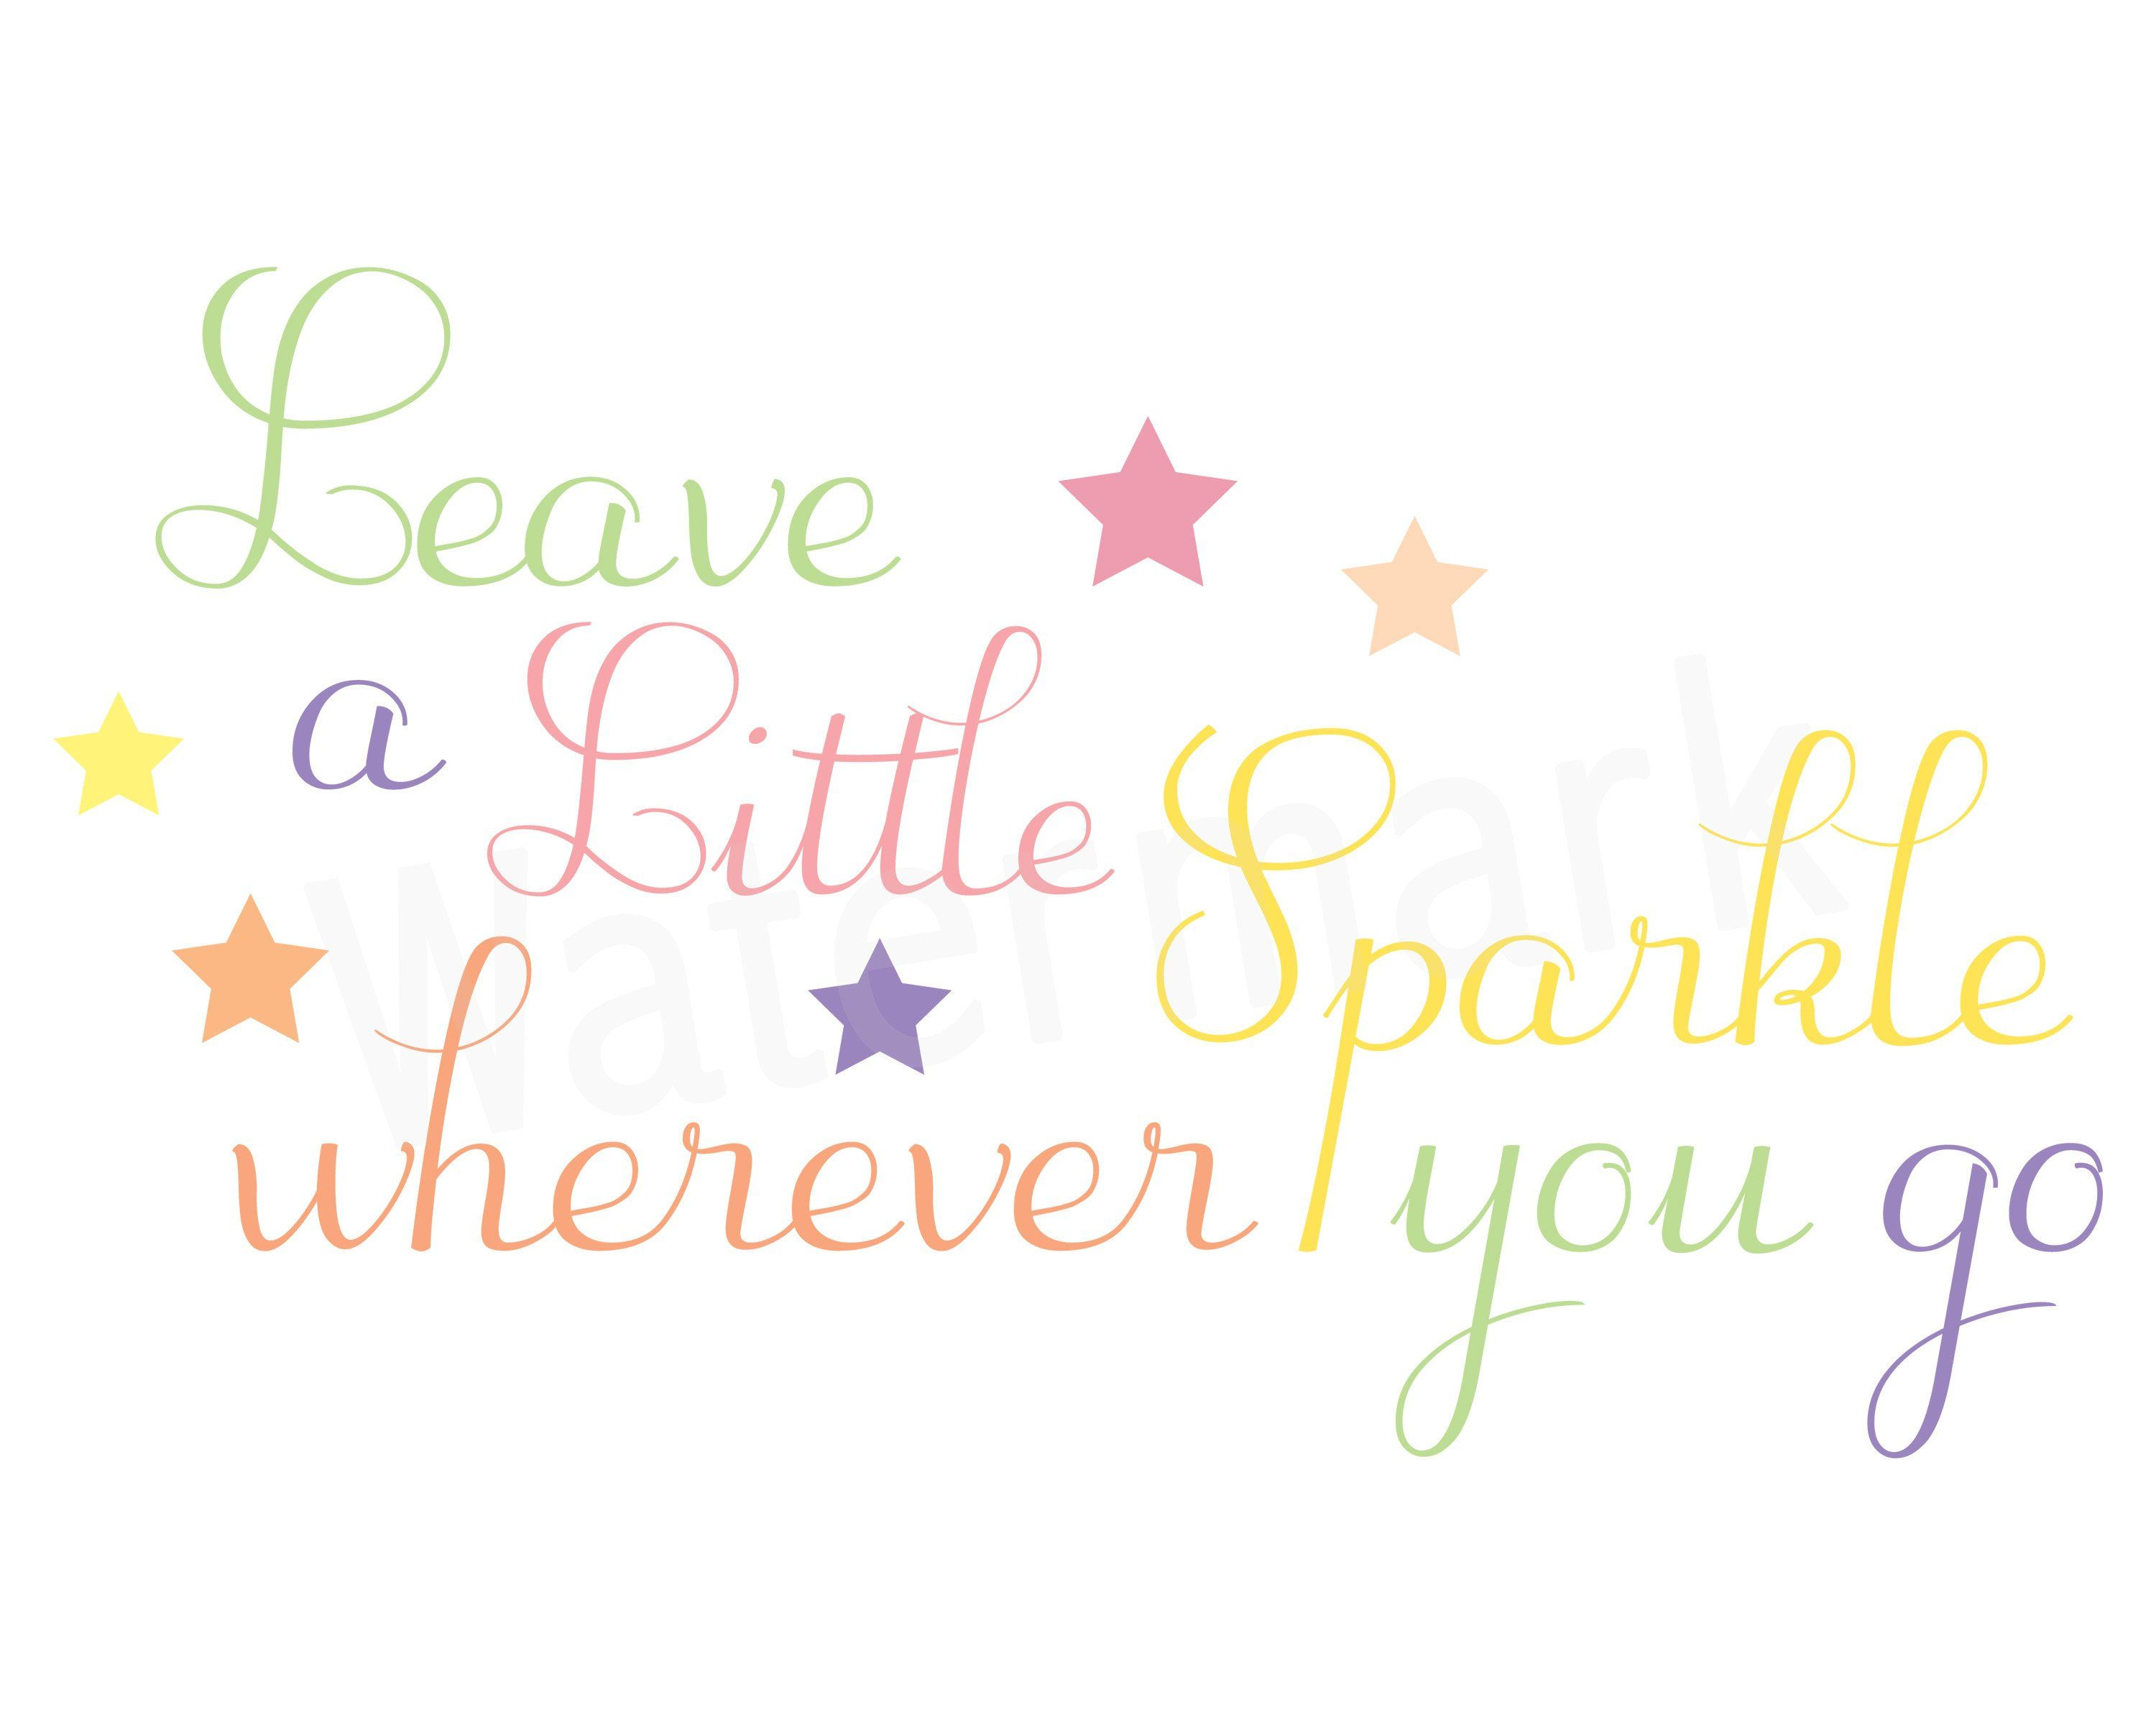 Leave A Little Sparkle Wherever You Go Svg Instant Download Art